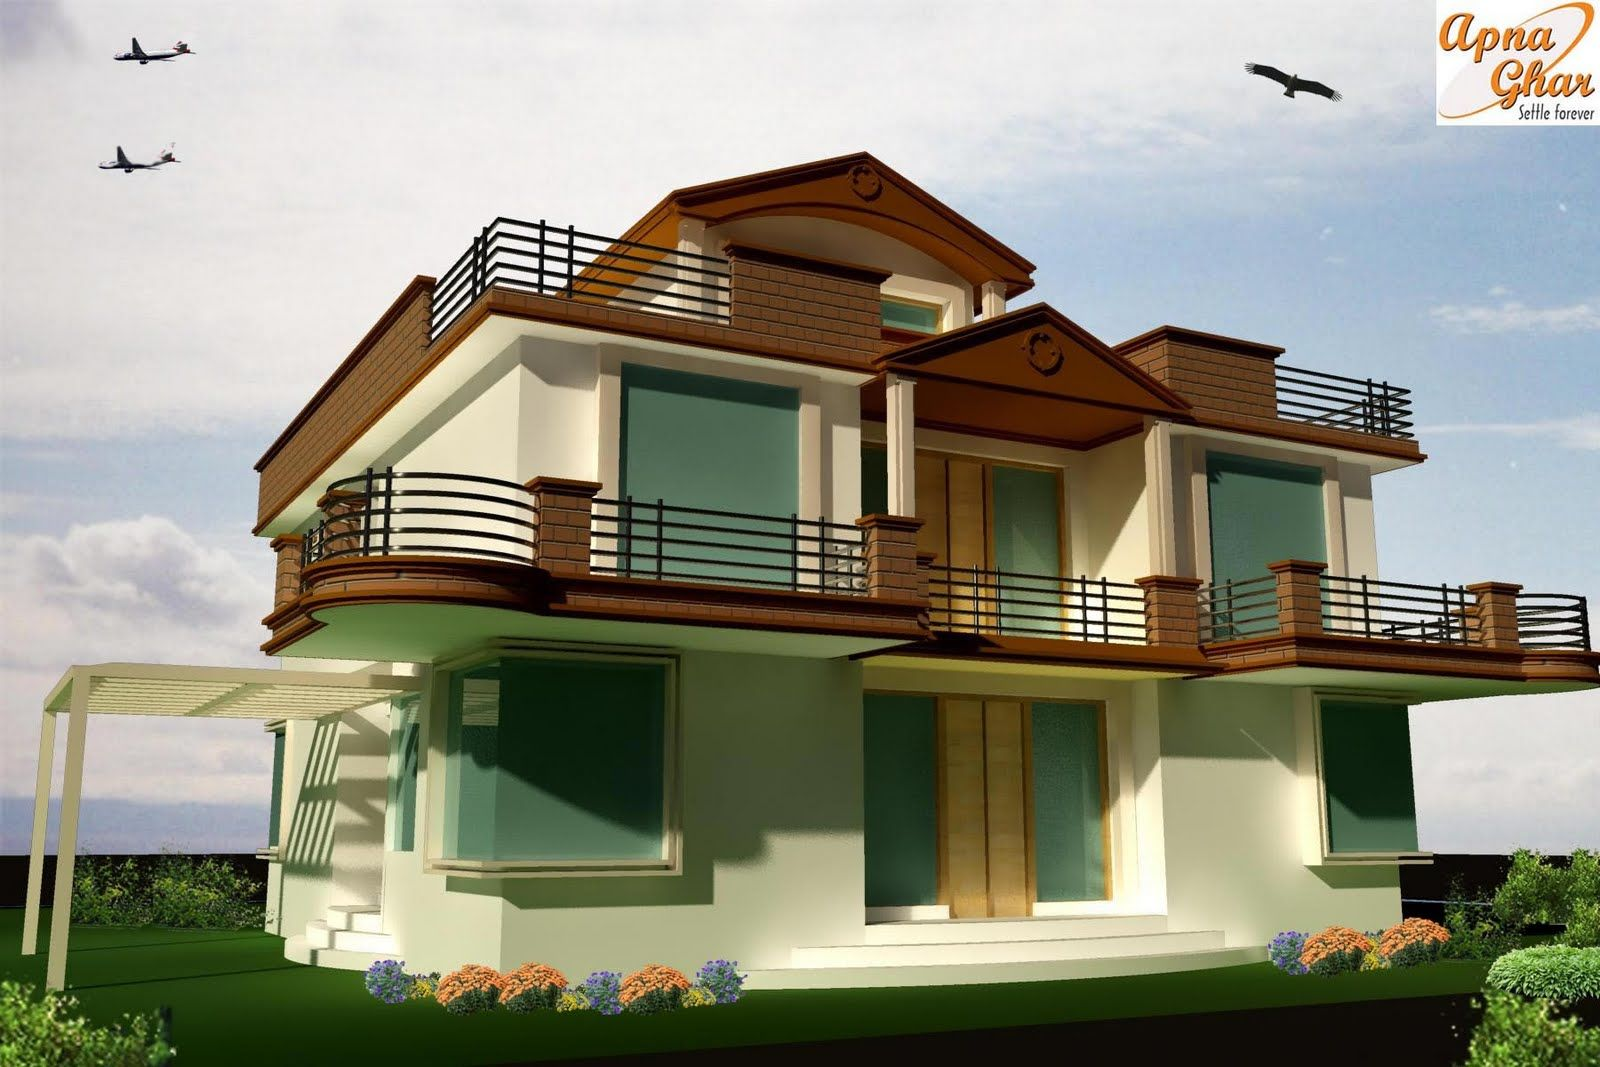 Architectural designs modern architectural house plans for Home designer architectural